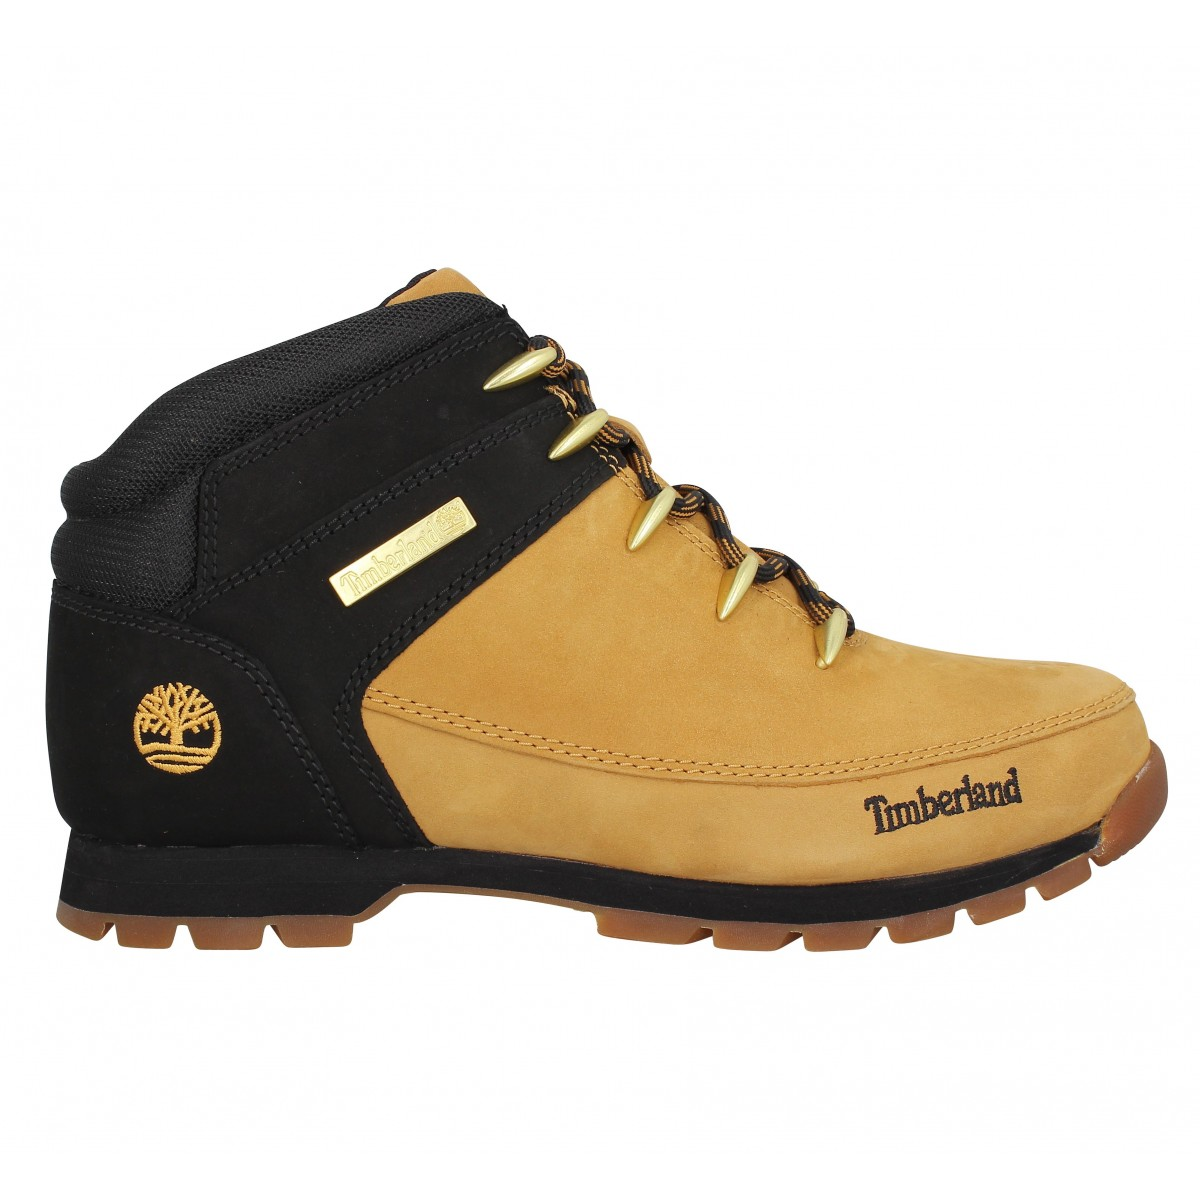 Timberland Hiker Chaussures Homme Ocre Nubuck Fanny Sprint Euro TfzT4nwBv